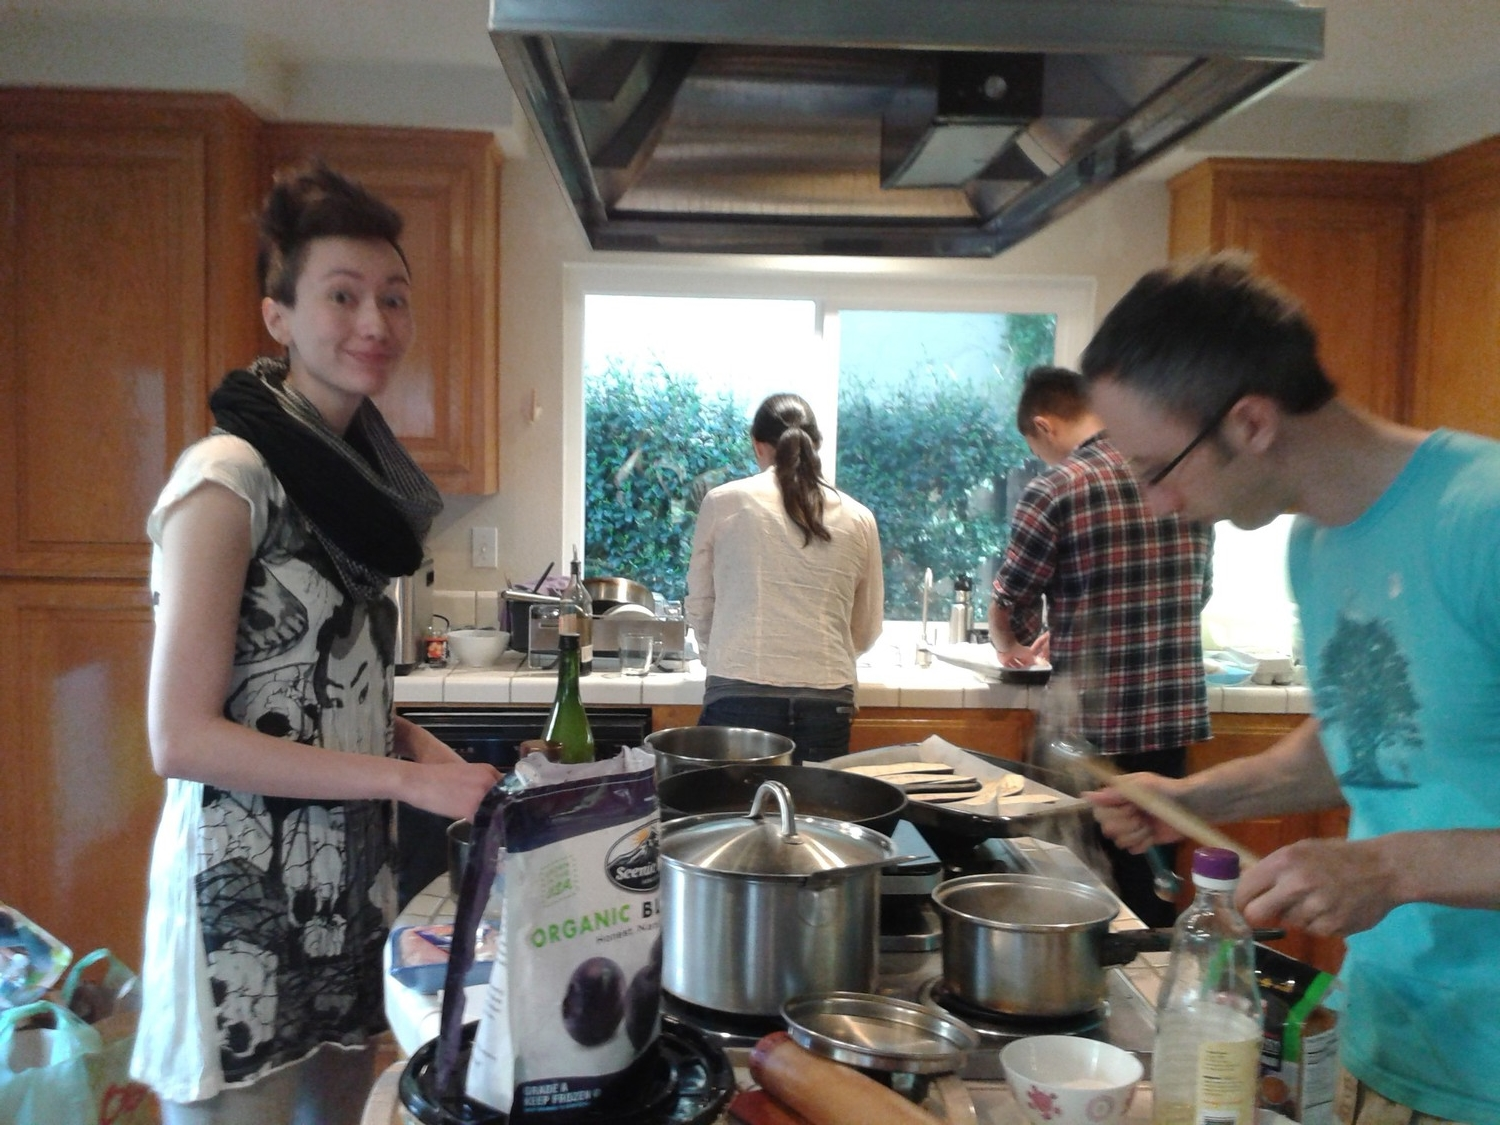 Crowding in the kitchen, making all the foods.